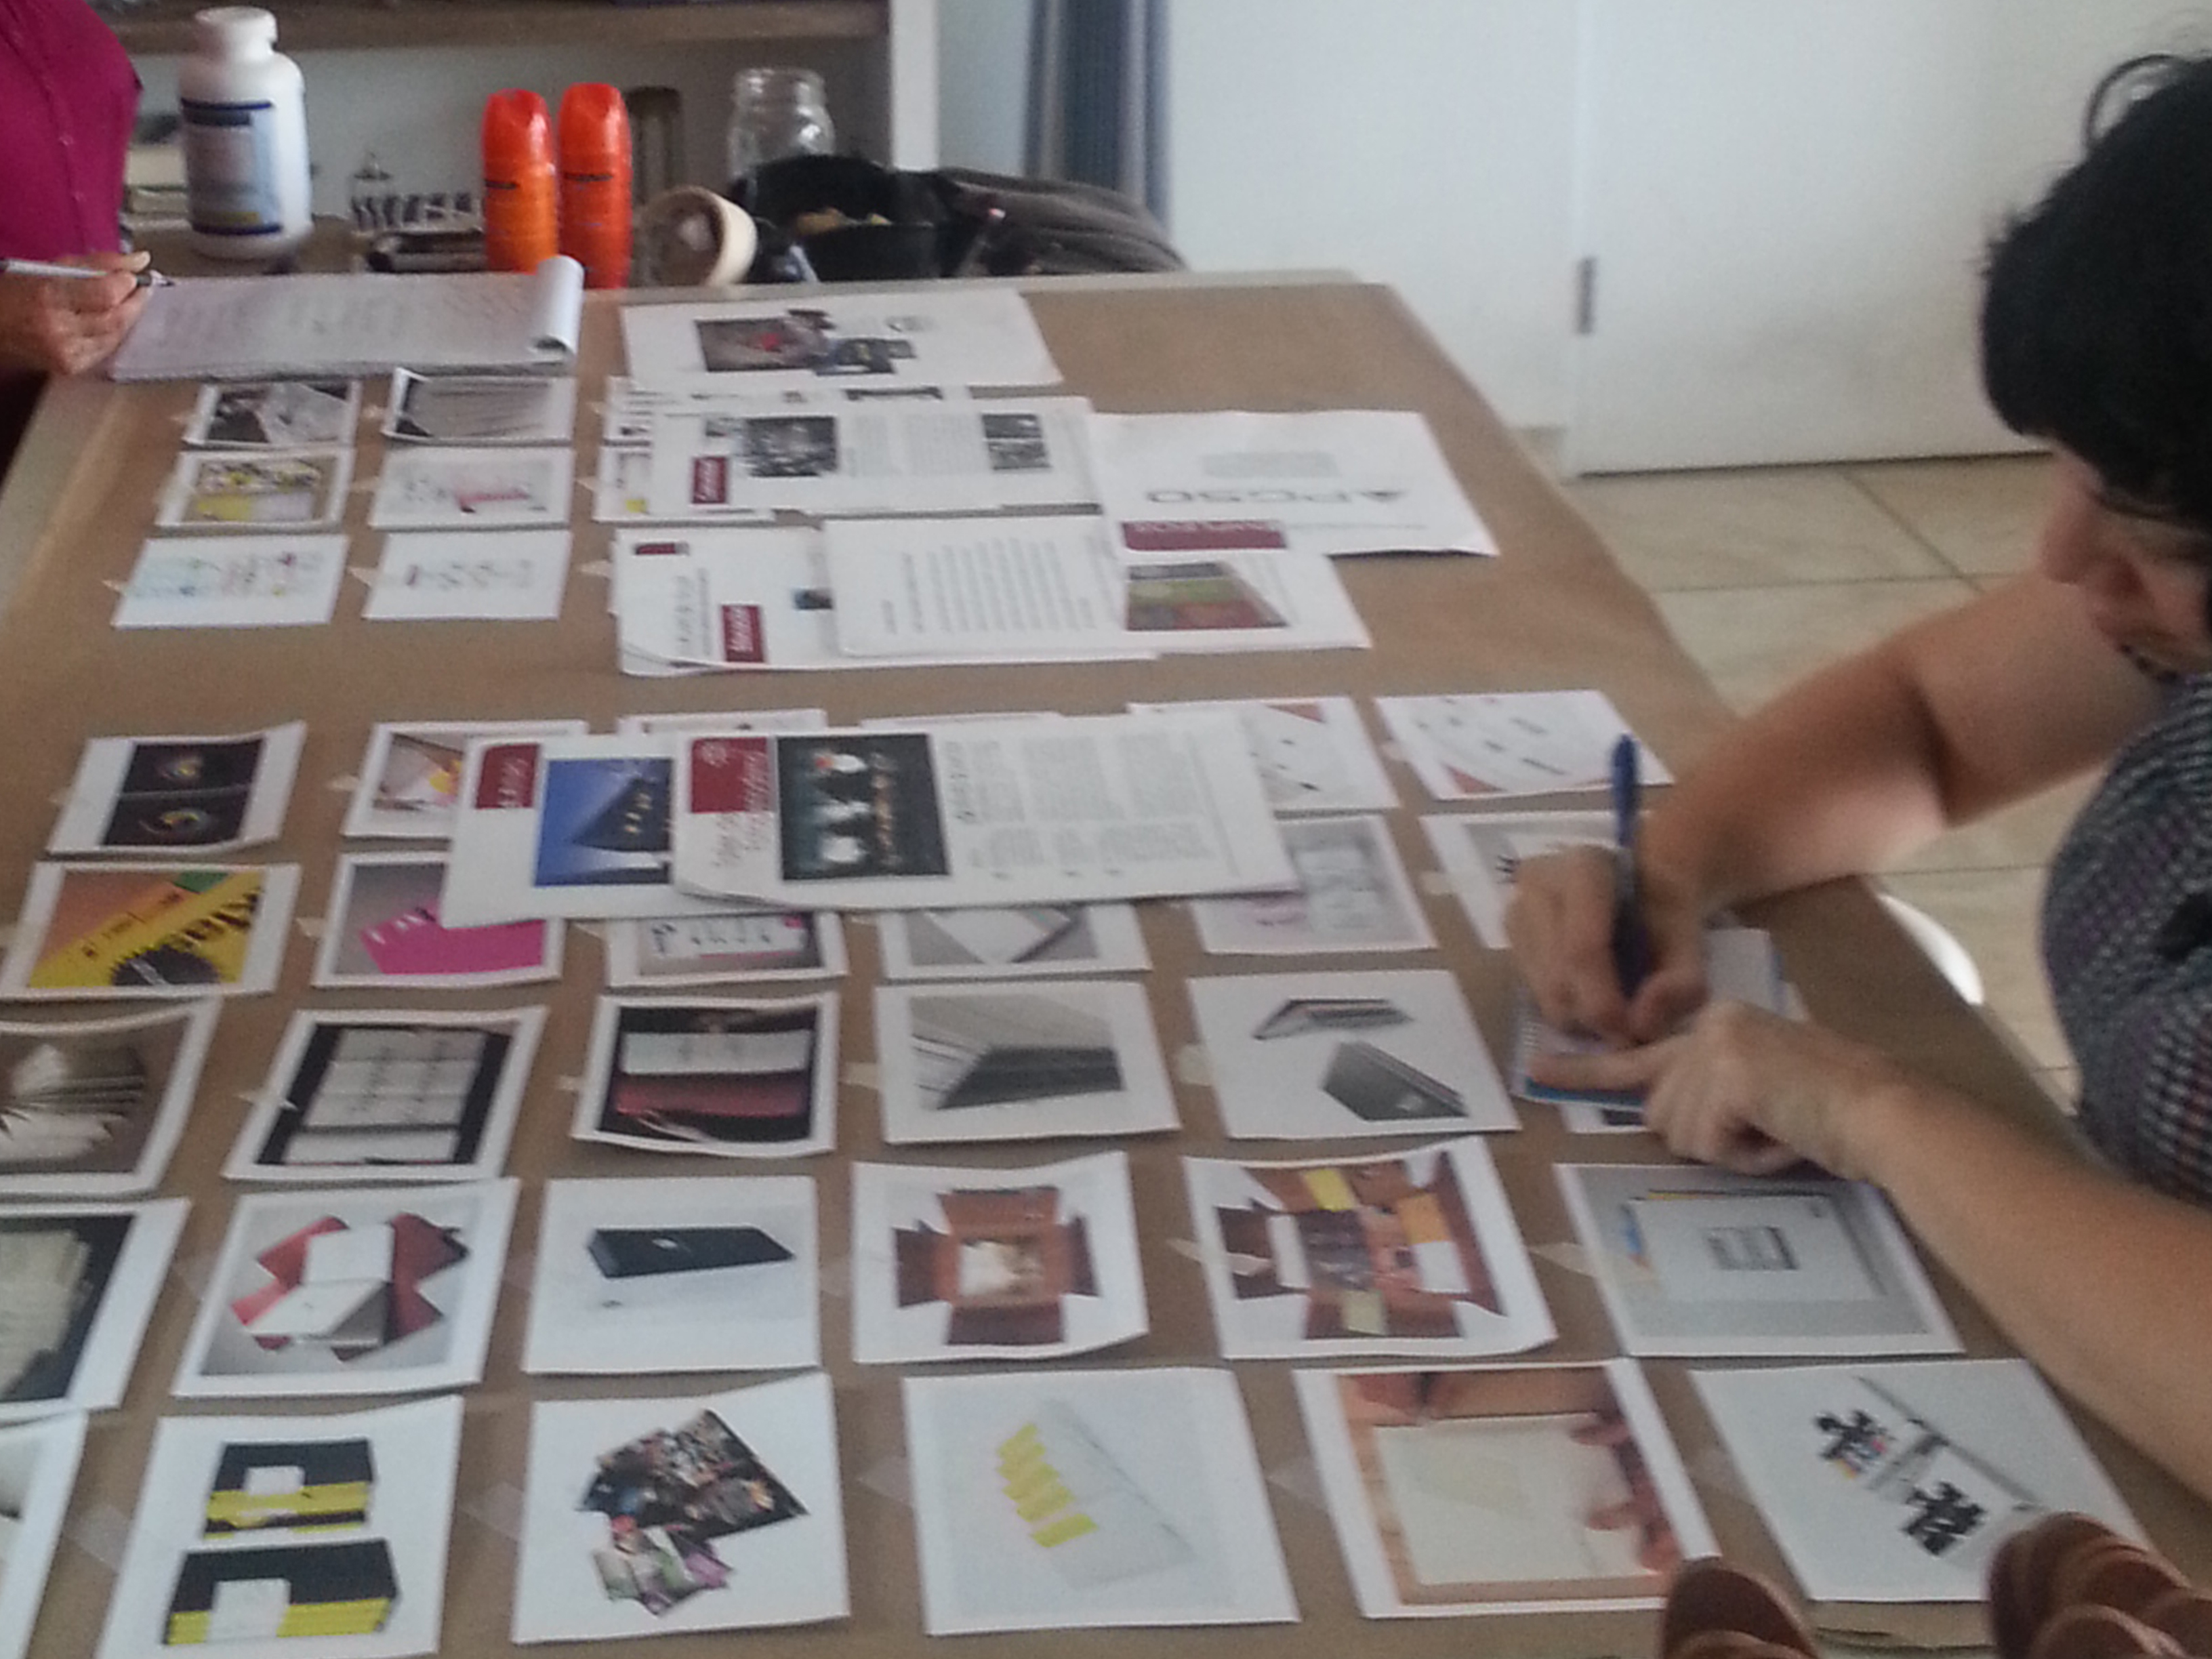 Marla Cirino working on the mood board session